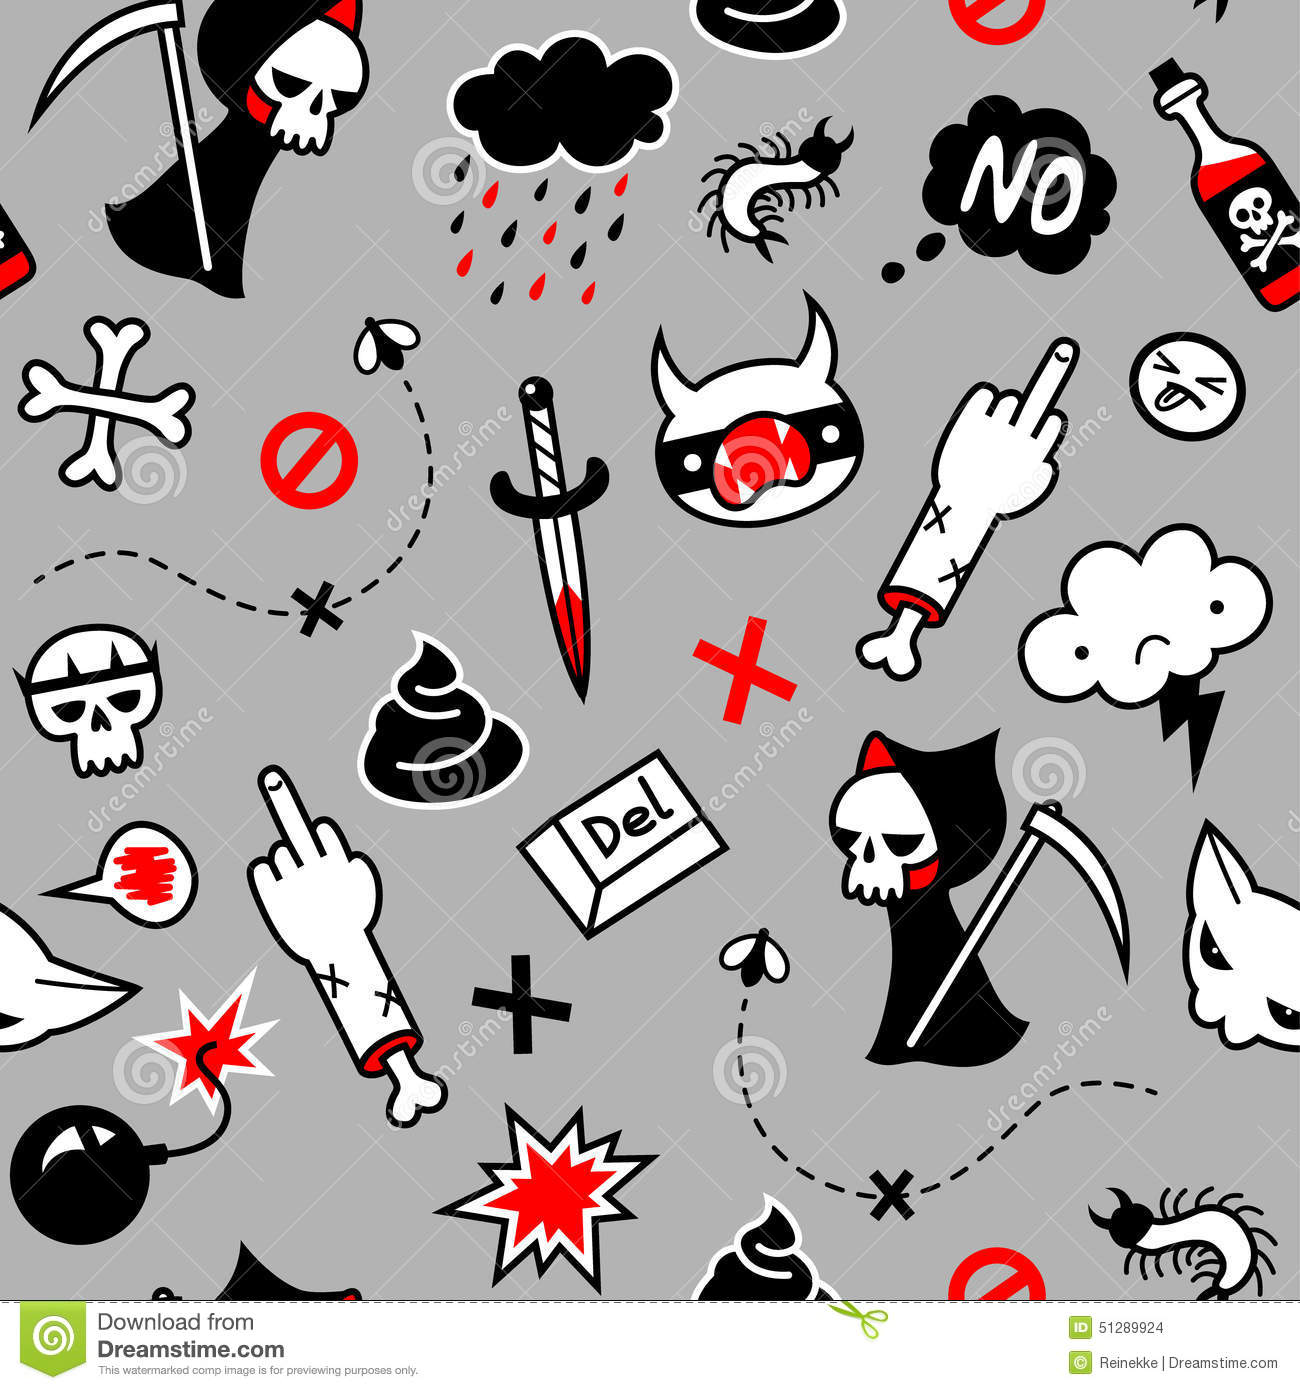 Depression Stock Vector Illustration Of Insect Death 51289924